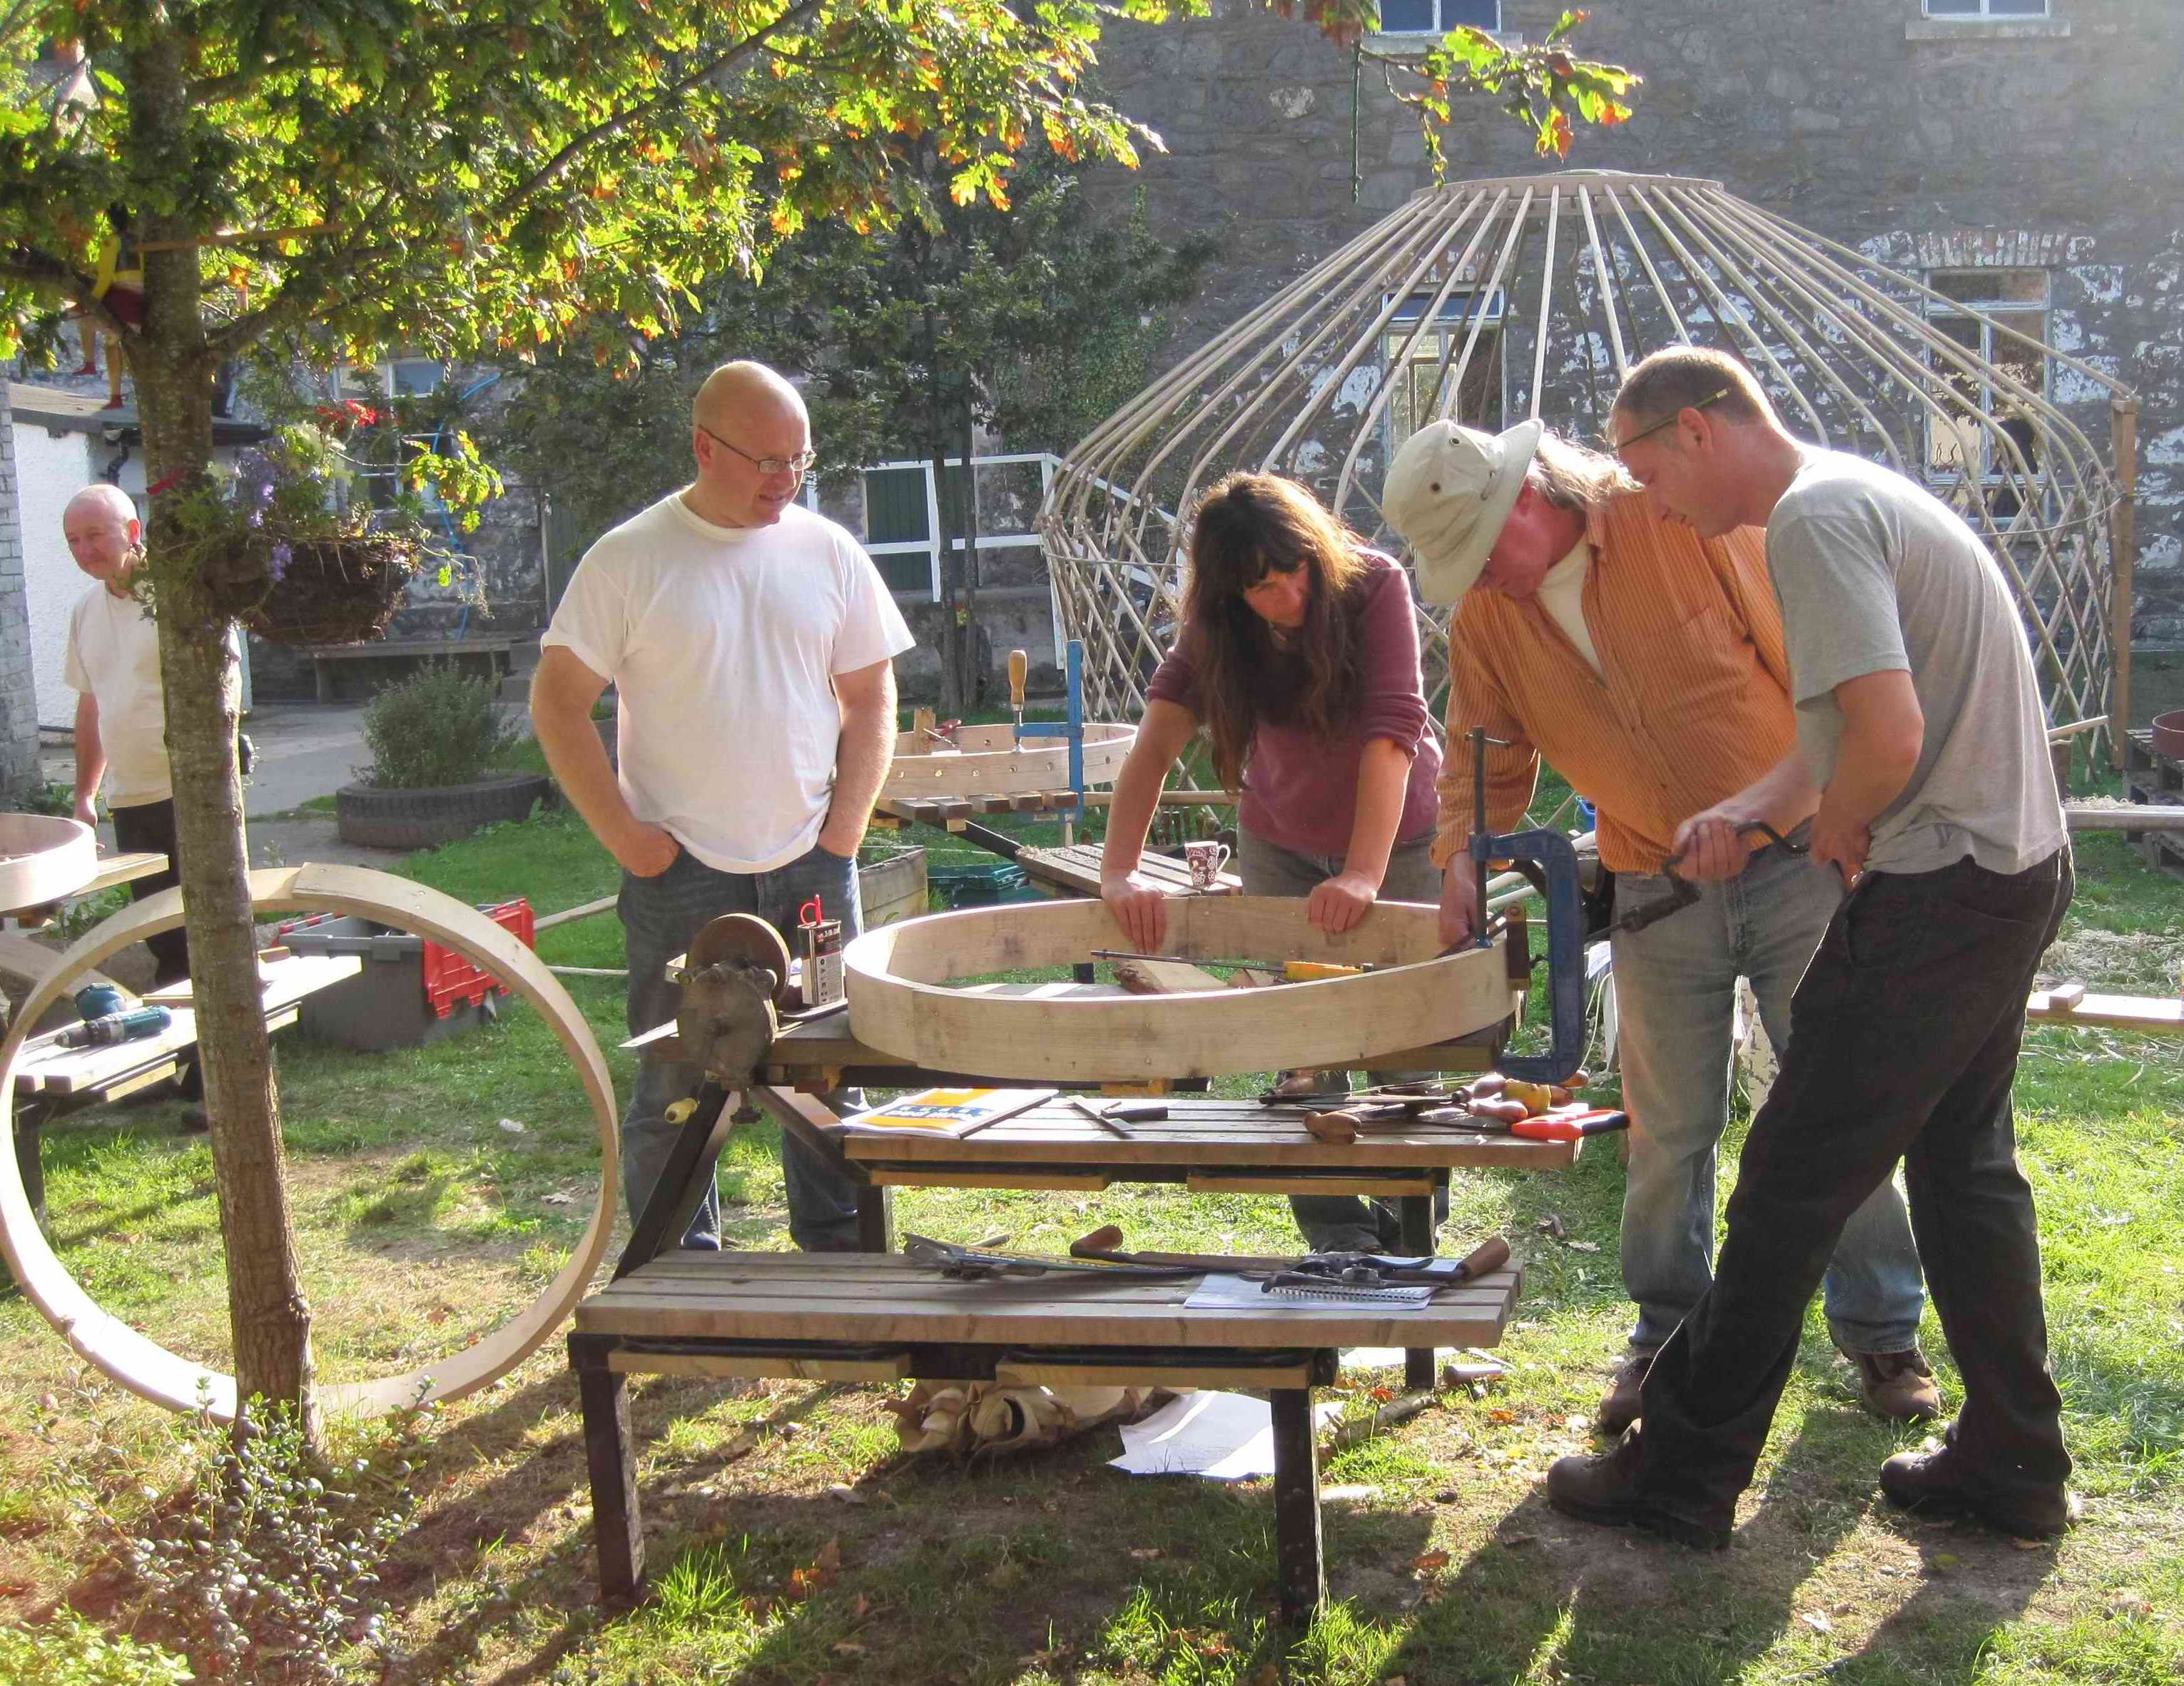 Dolydd yurt making reduced